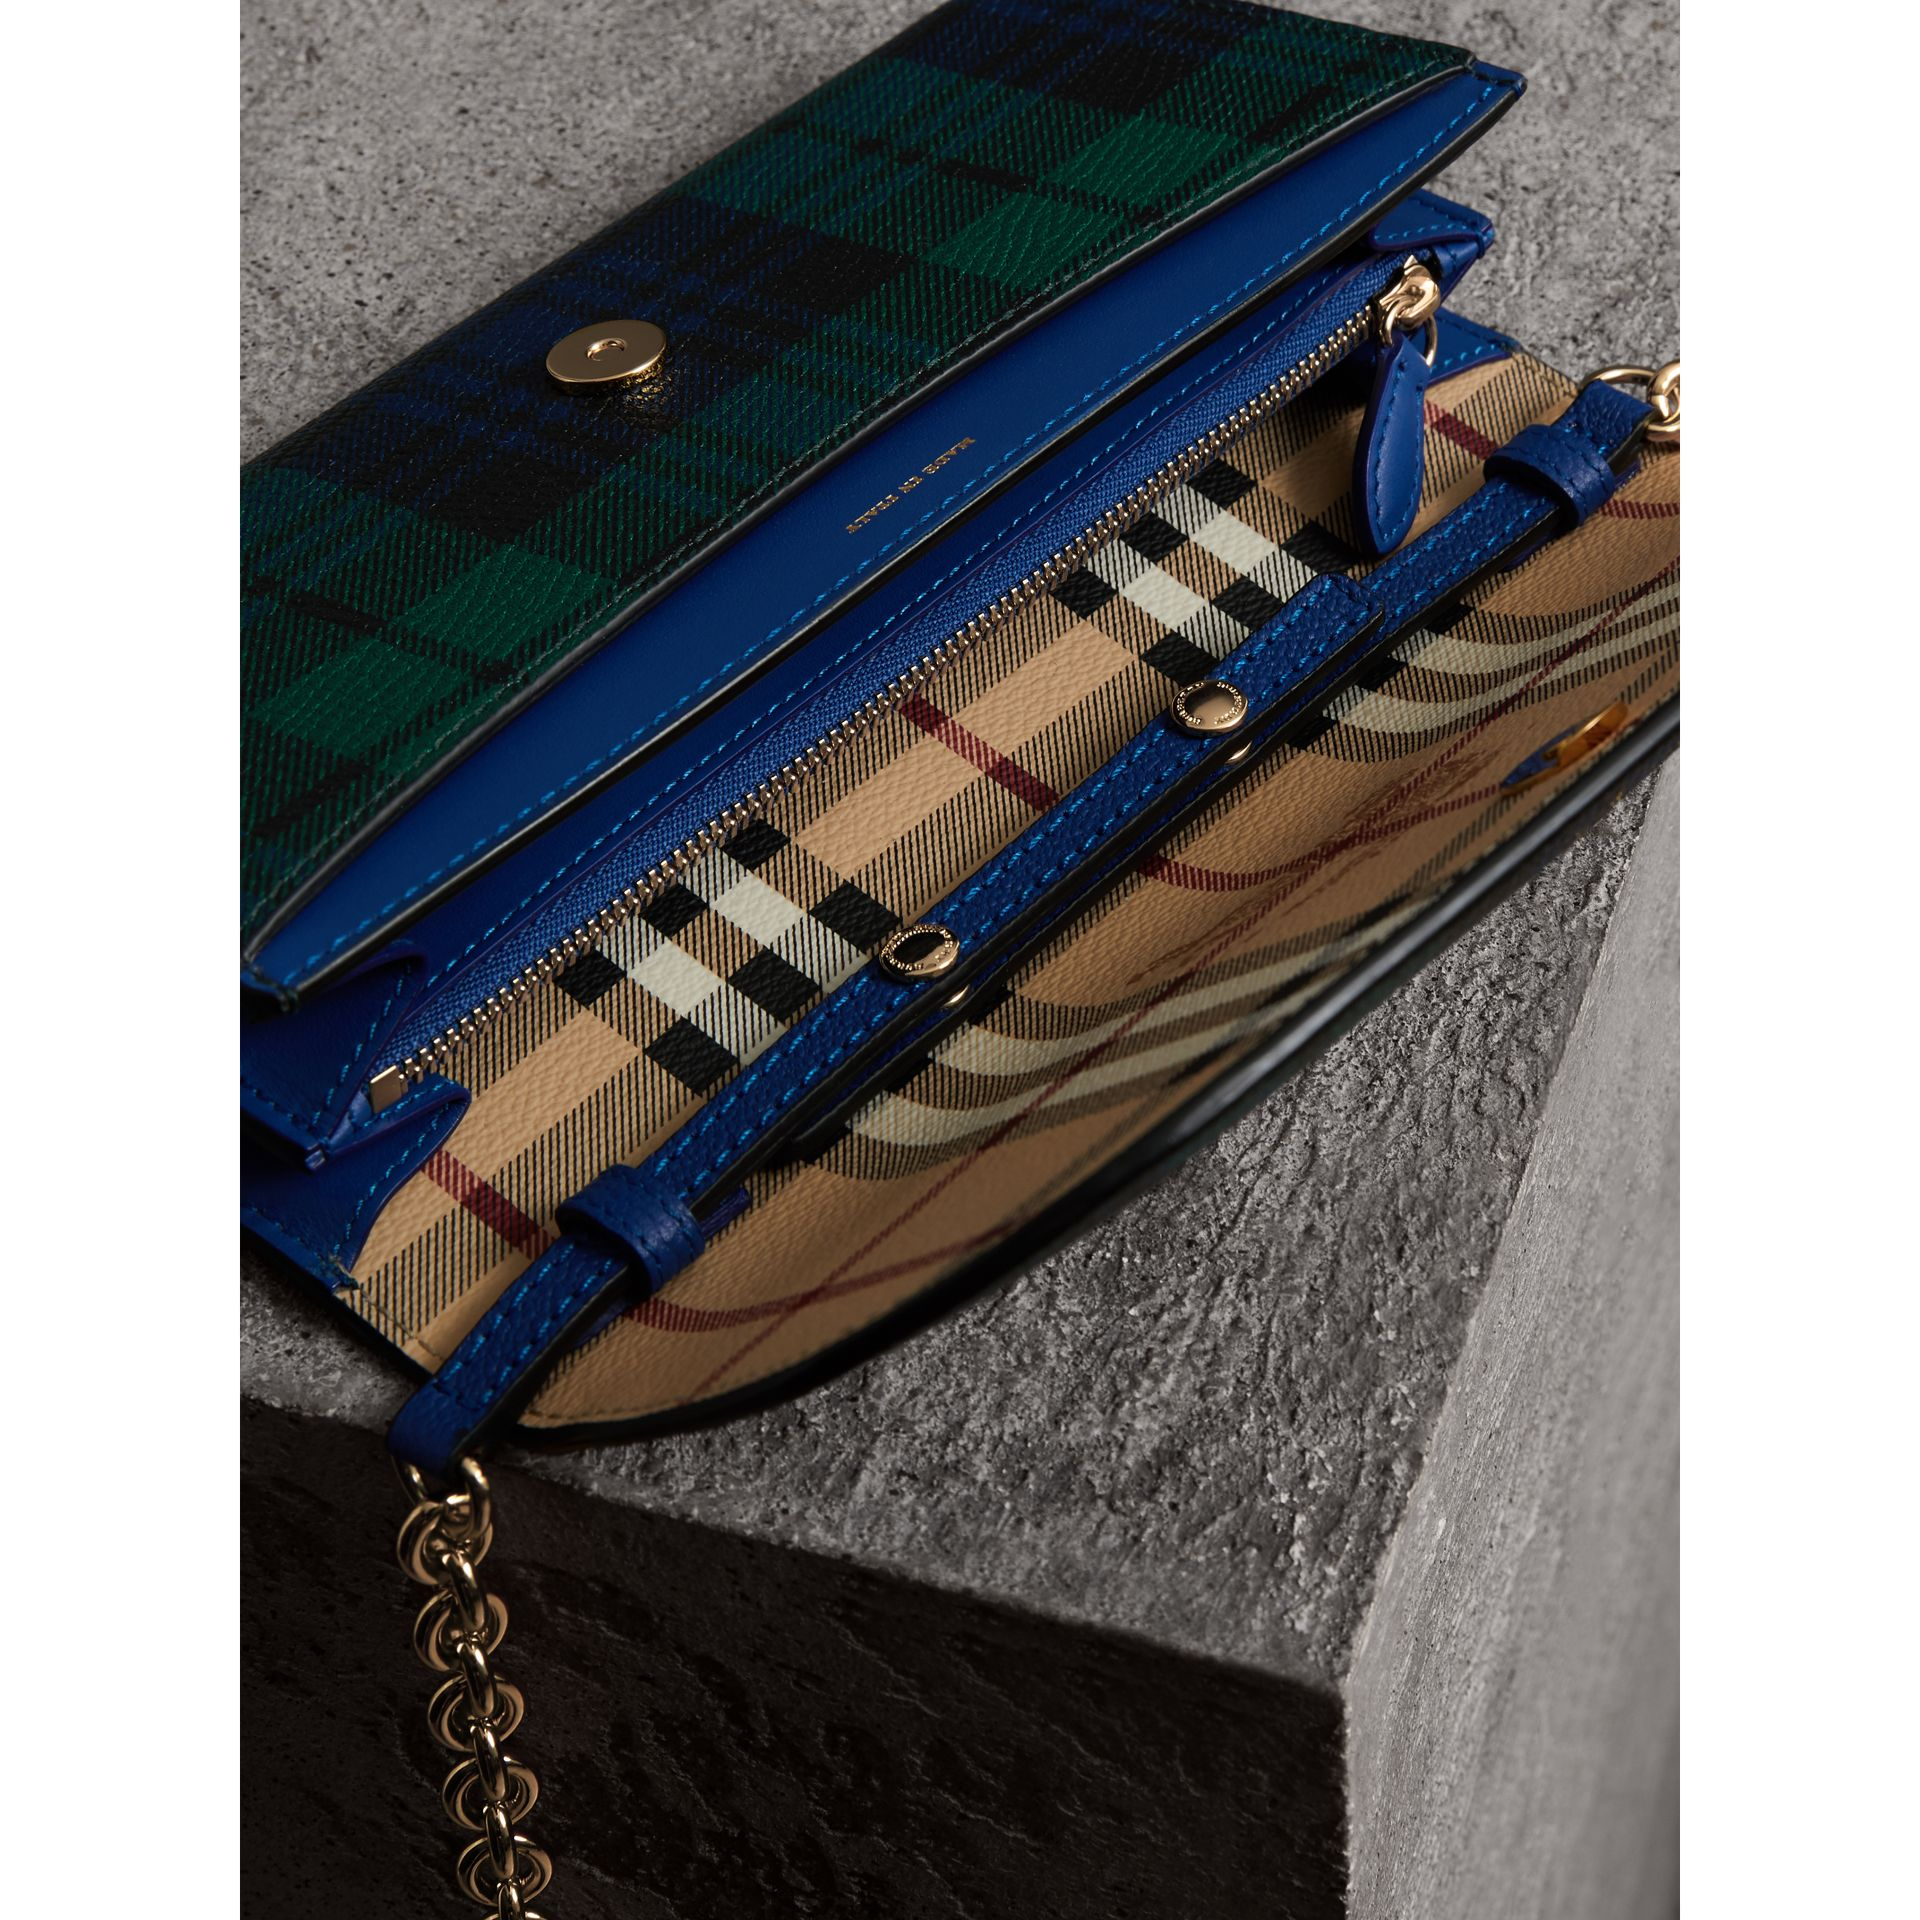 Creature Appliqué Tartan Leather Wallet with Chain in Bright Navy - Women | Burberry Hong Kong - gallery image 5